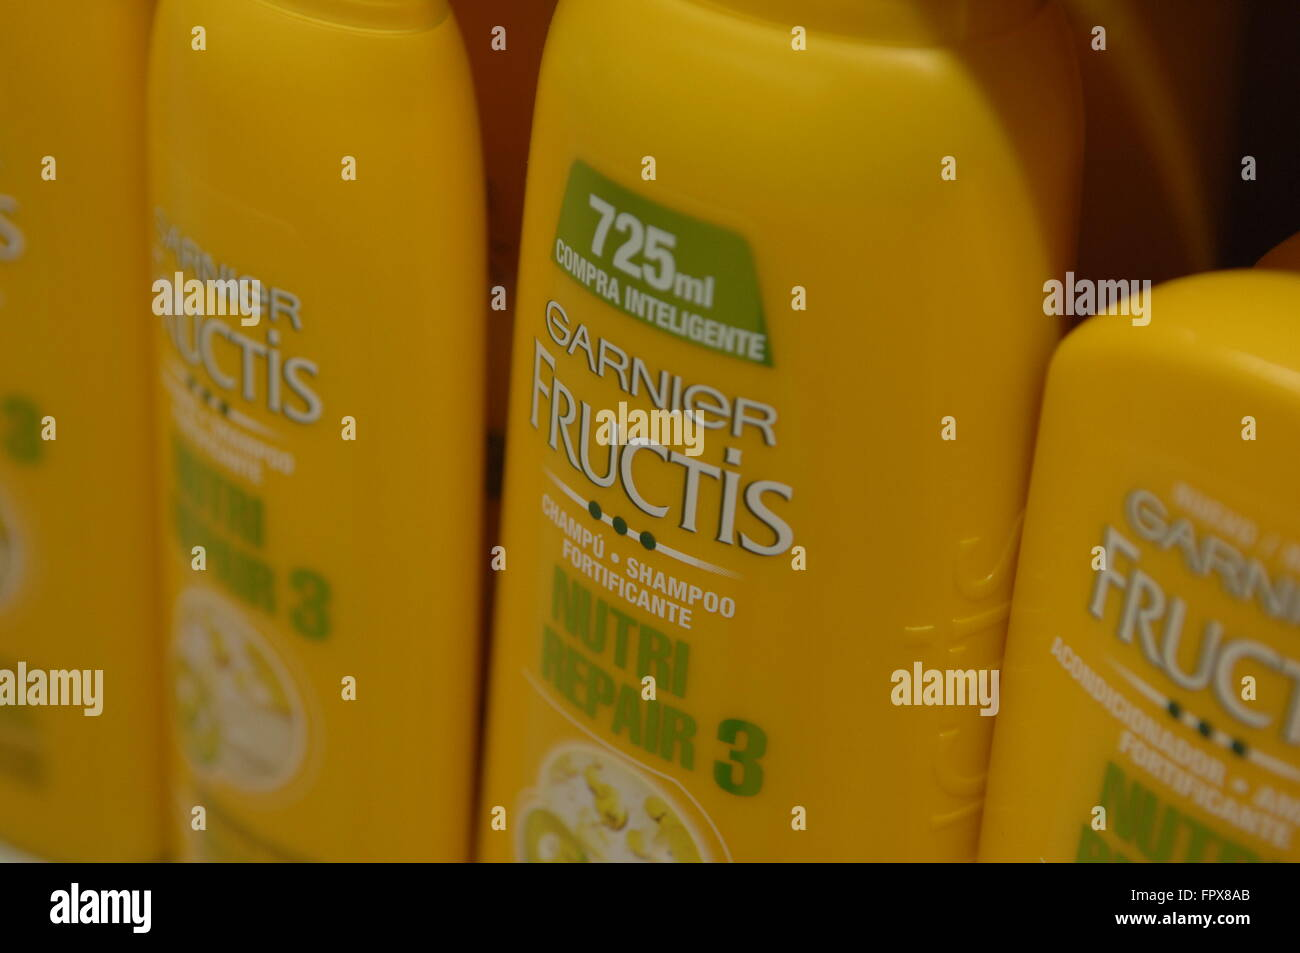 Garnier Fructis 3 oil on display in a Carrefour Supermarket. - Stock Image